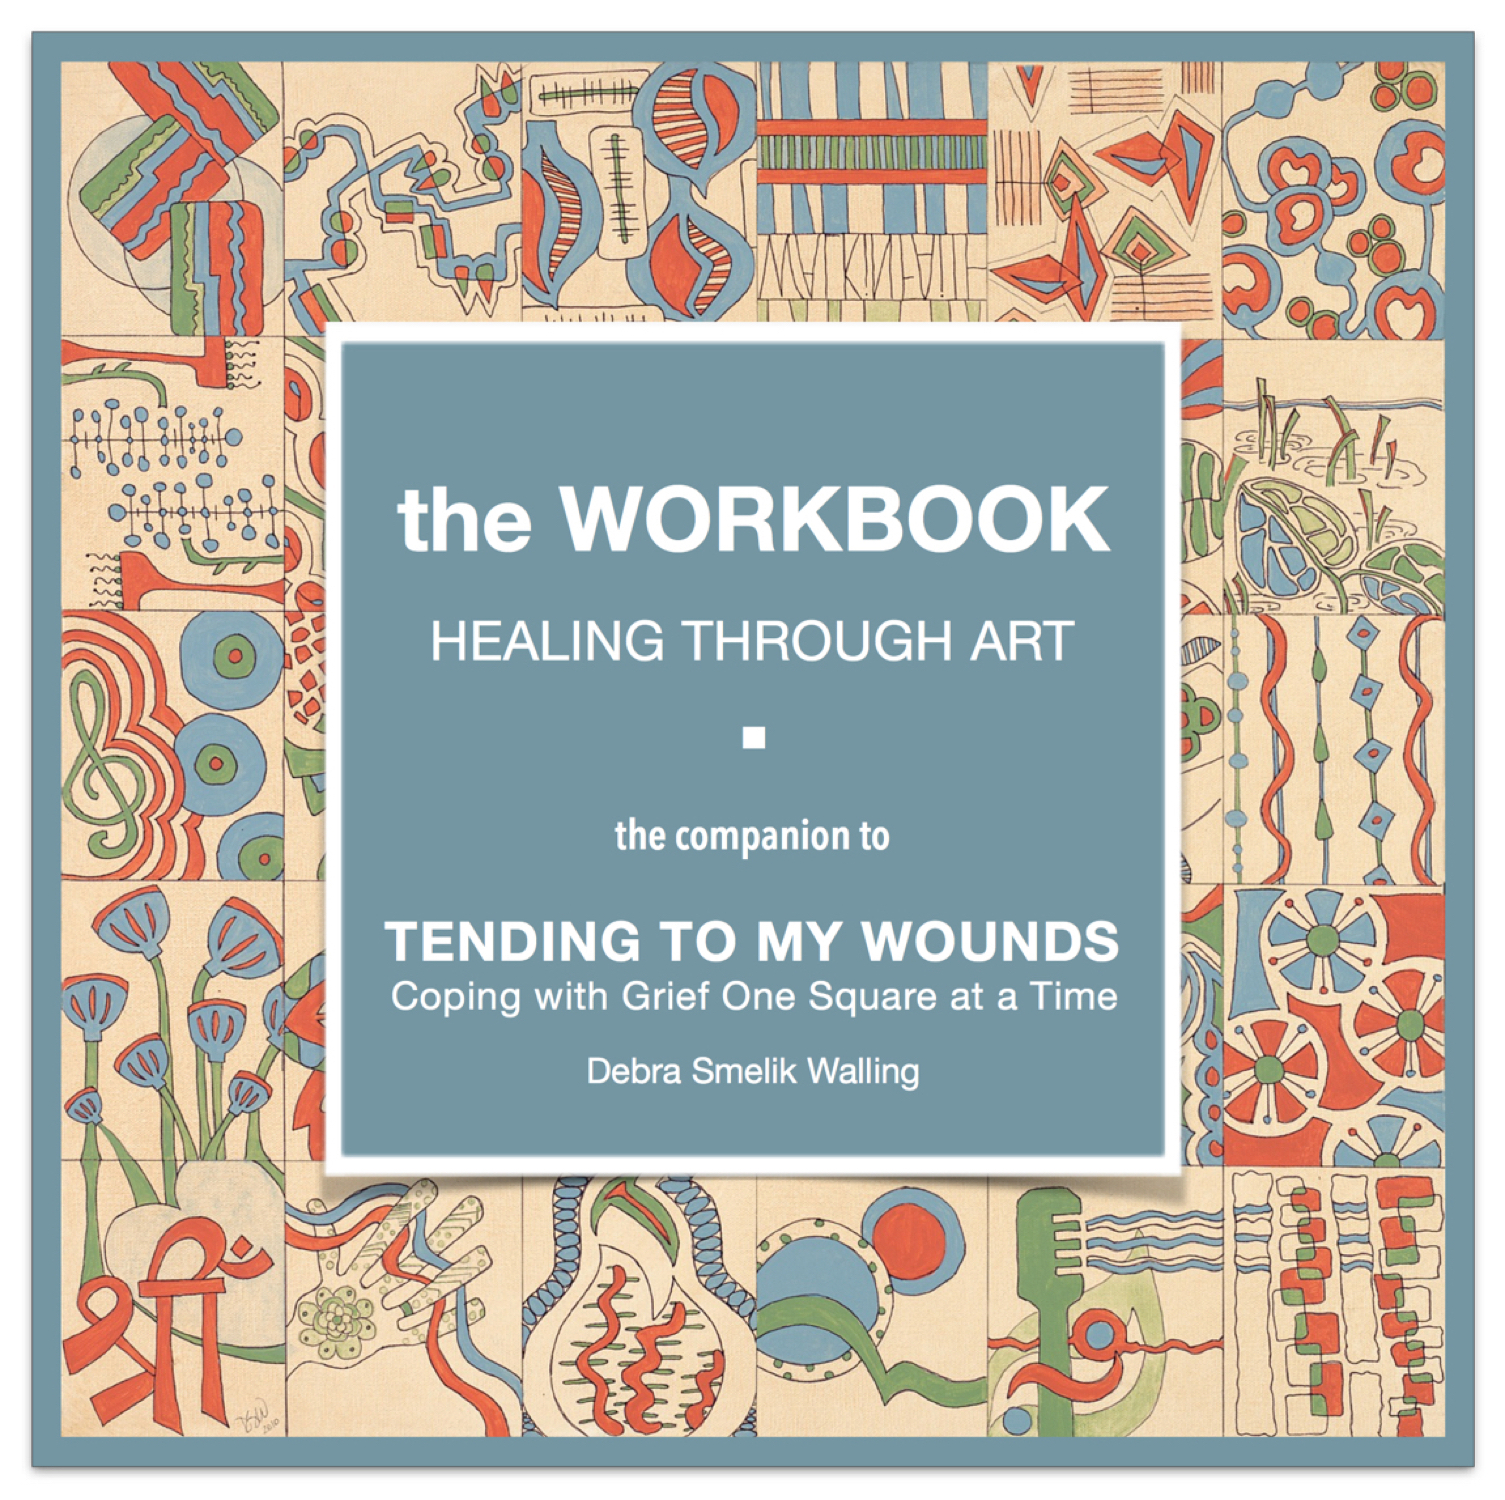 - Genre Non-Fiction, Grief, Bereavement, Self-HelpISBN 978-0996201056BUY NOW at AMAZONCurrently the book, TENDING TO MY WOUNDS and its companion The Workbook are sold separately through Amazon. Our apology for the inconvenience, however, to BUNDLE & SAVE $4.85 contact the author direct.BOOK & WORKBOOK$25.00plus shipping / taxes were applicable